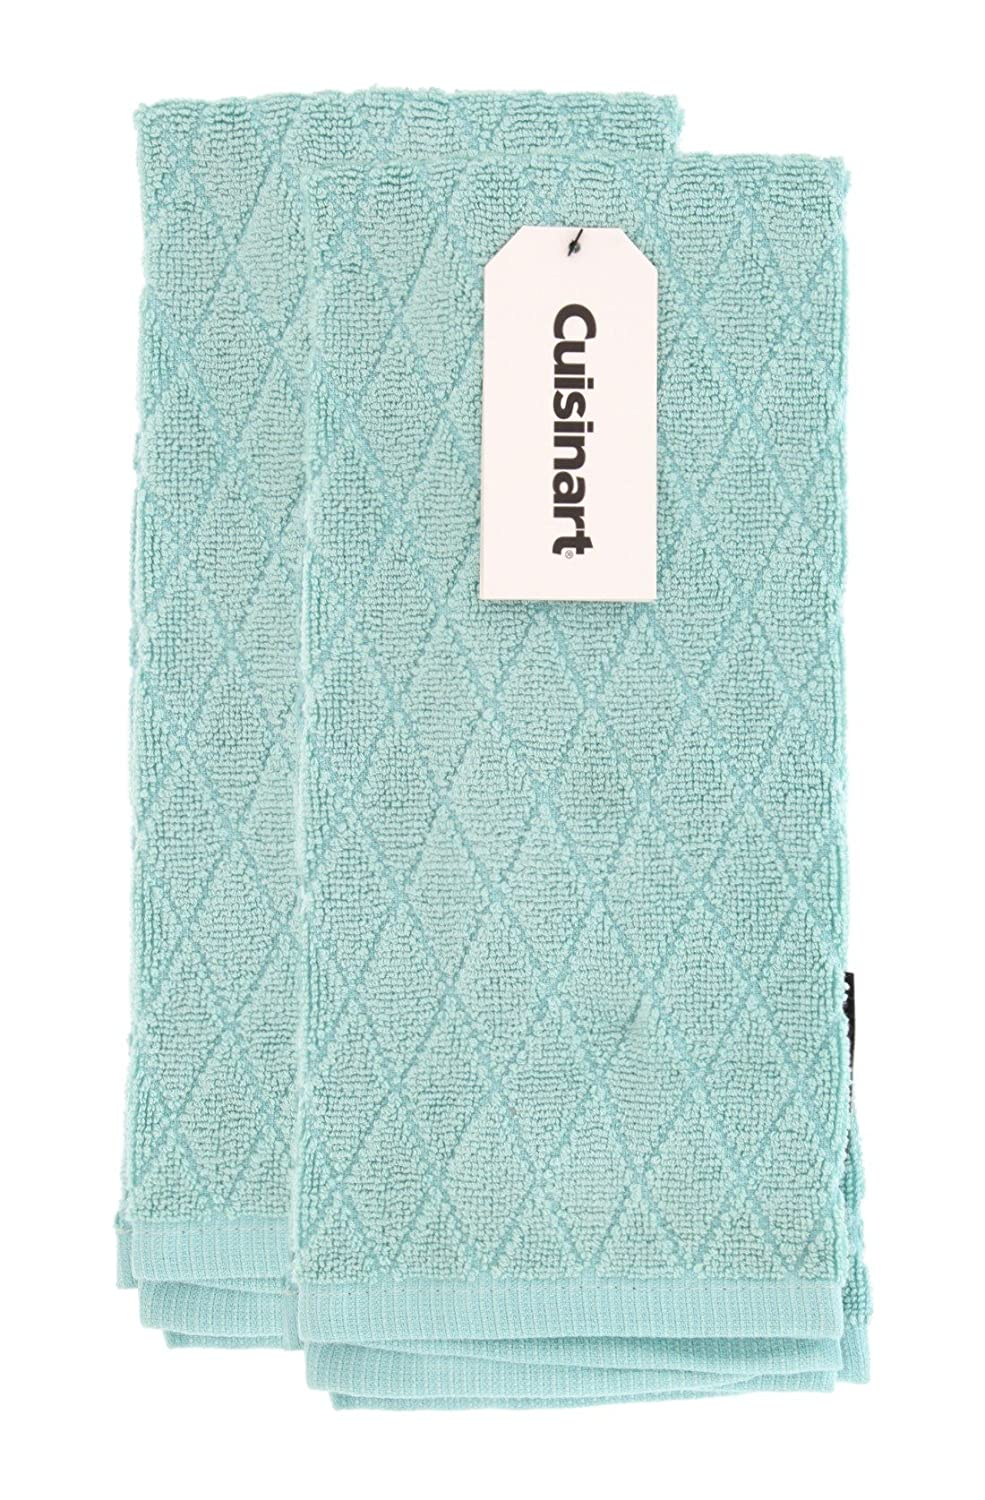 Cuisinart Bamboo Kitchen Towels - Ultra Soft, Absorbent and Anti-Microbial - Perfect for Drying Hands and Dishes - Premium Bamboo/Cotton Fiber Blend - Aqua, Set of 2, 16 x 26, Diamond Pattern